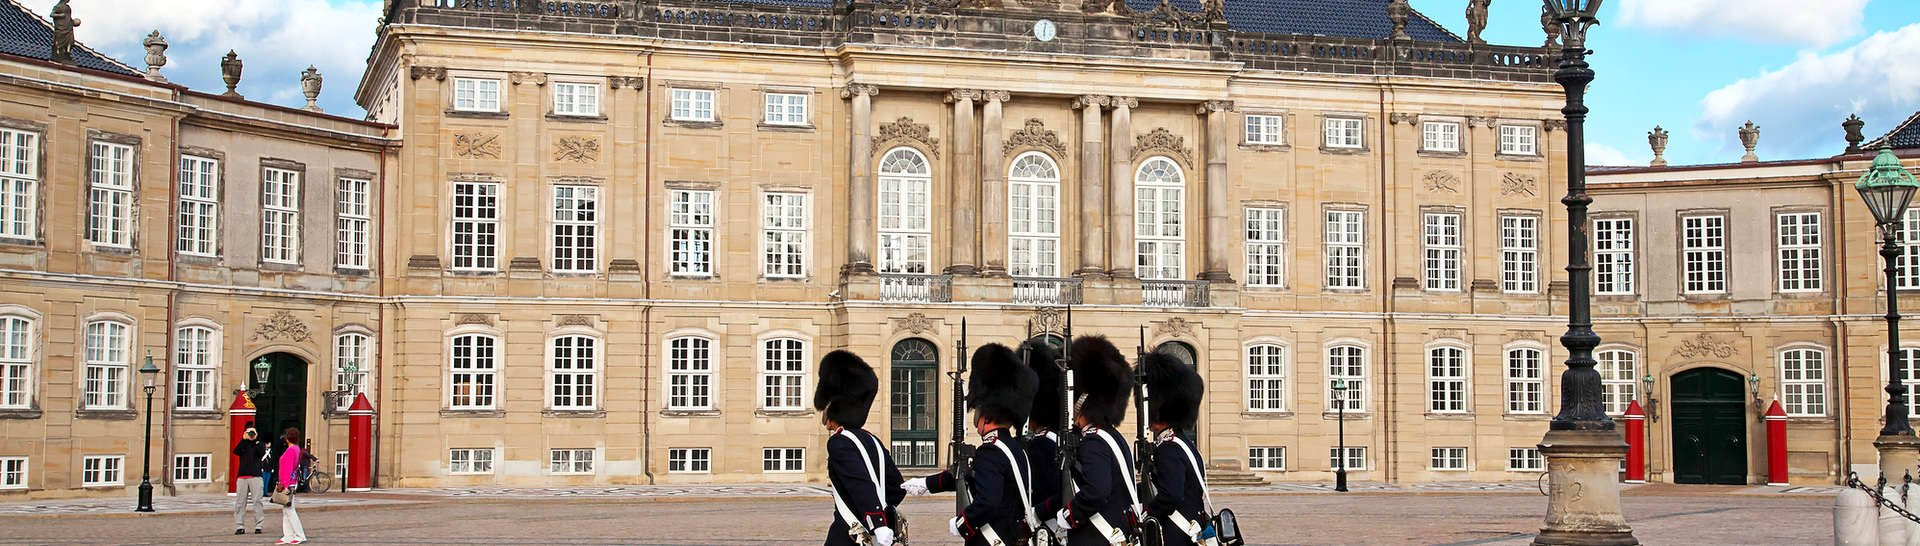 Changing of the Royal Guard ceremony is one of the highlights of your Denmark trip